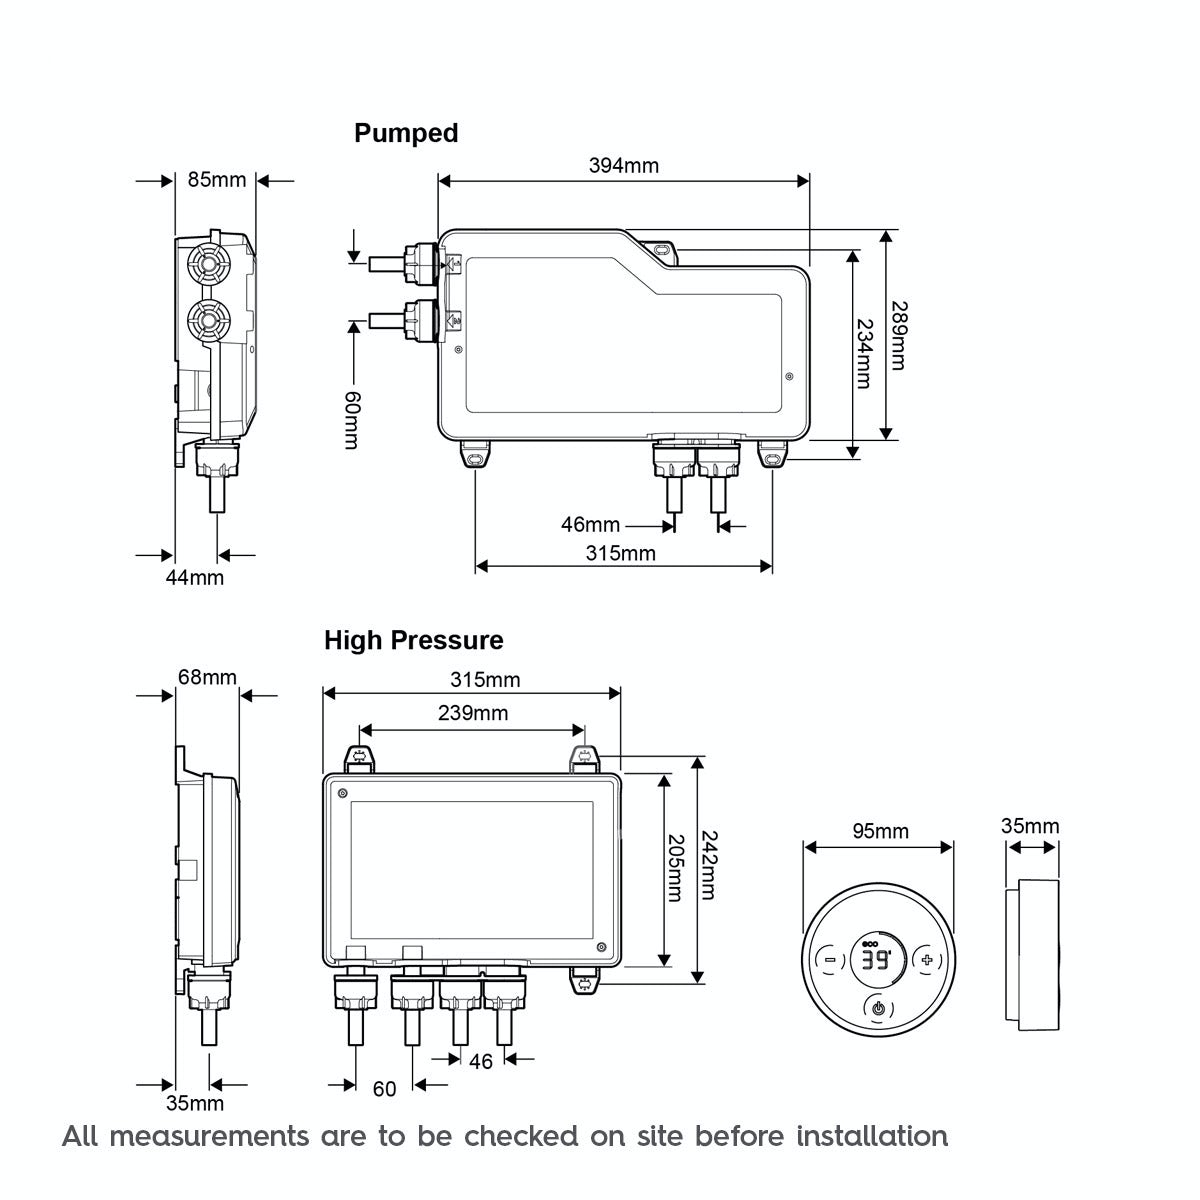 Dimensions for Mira Platinum digital shower valve and controller pumped